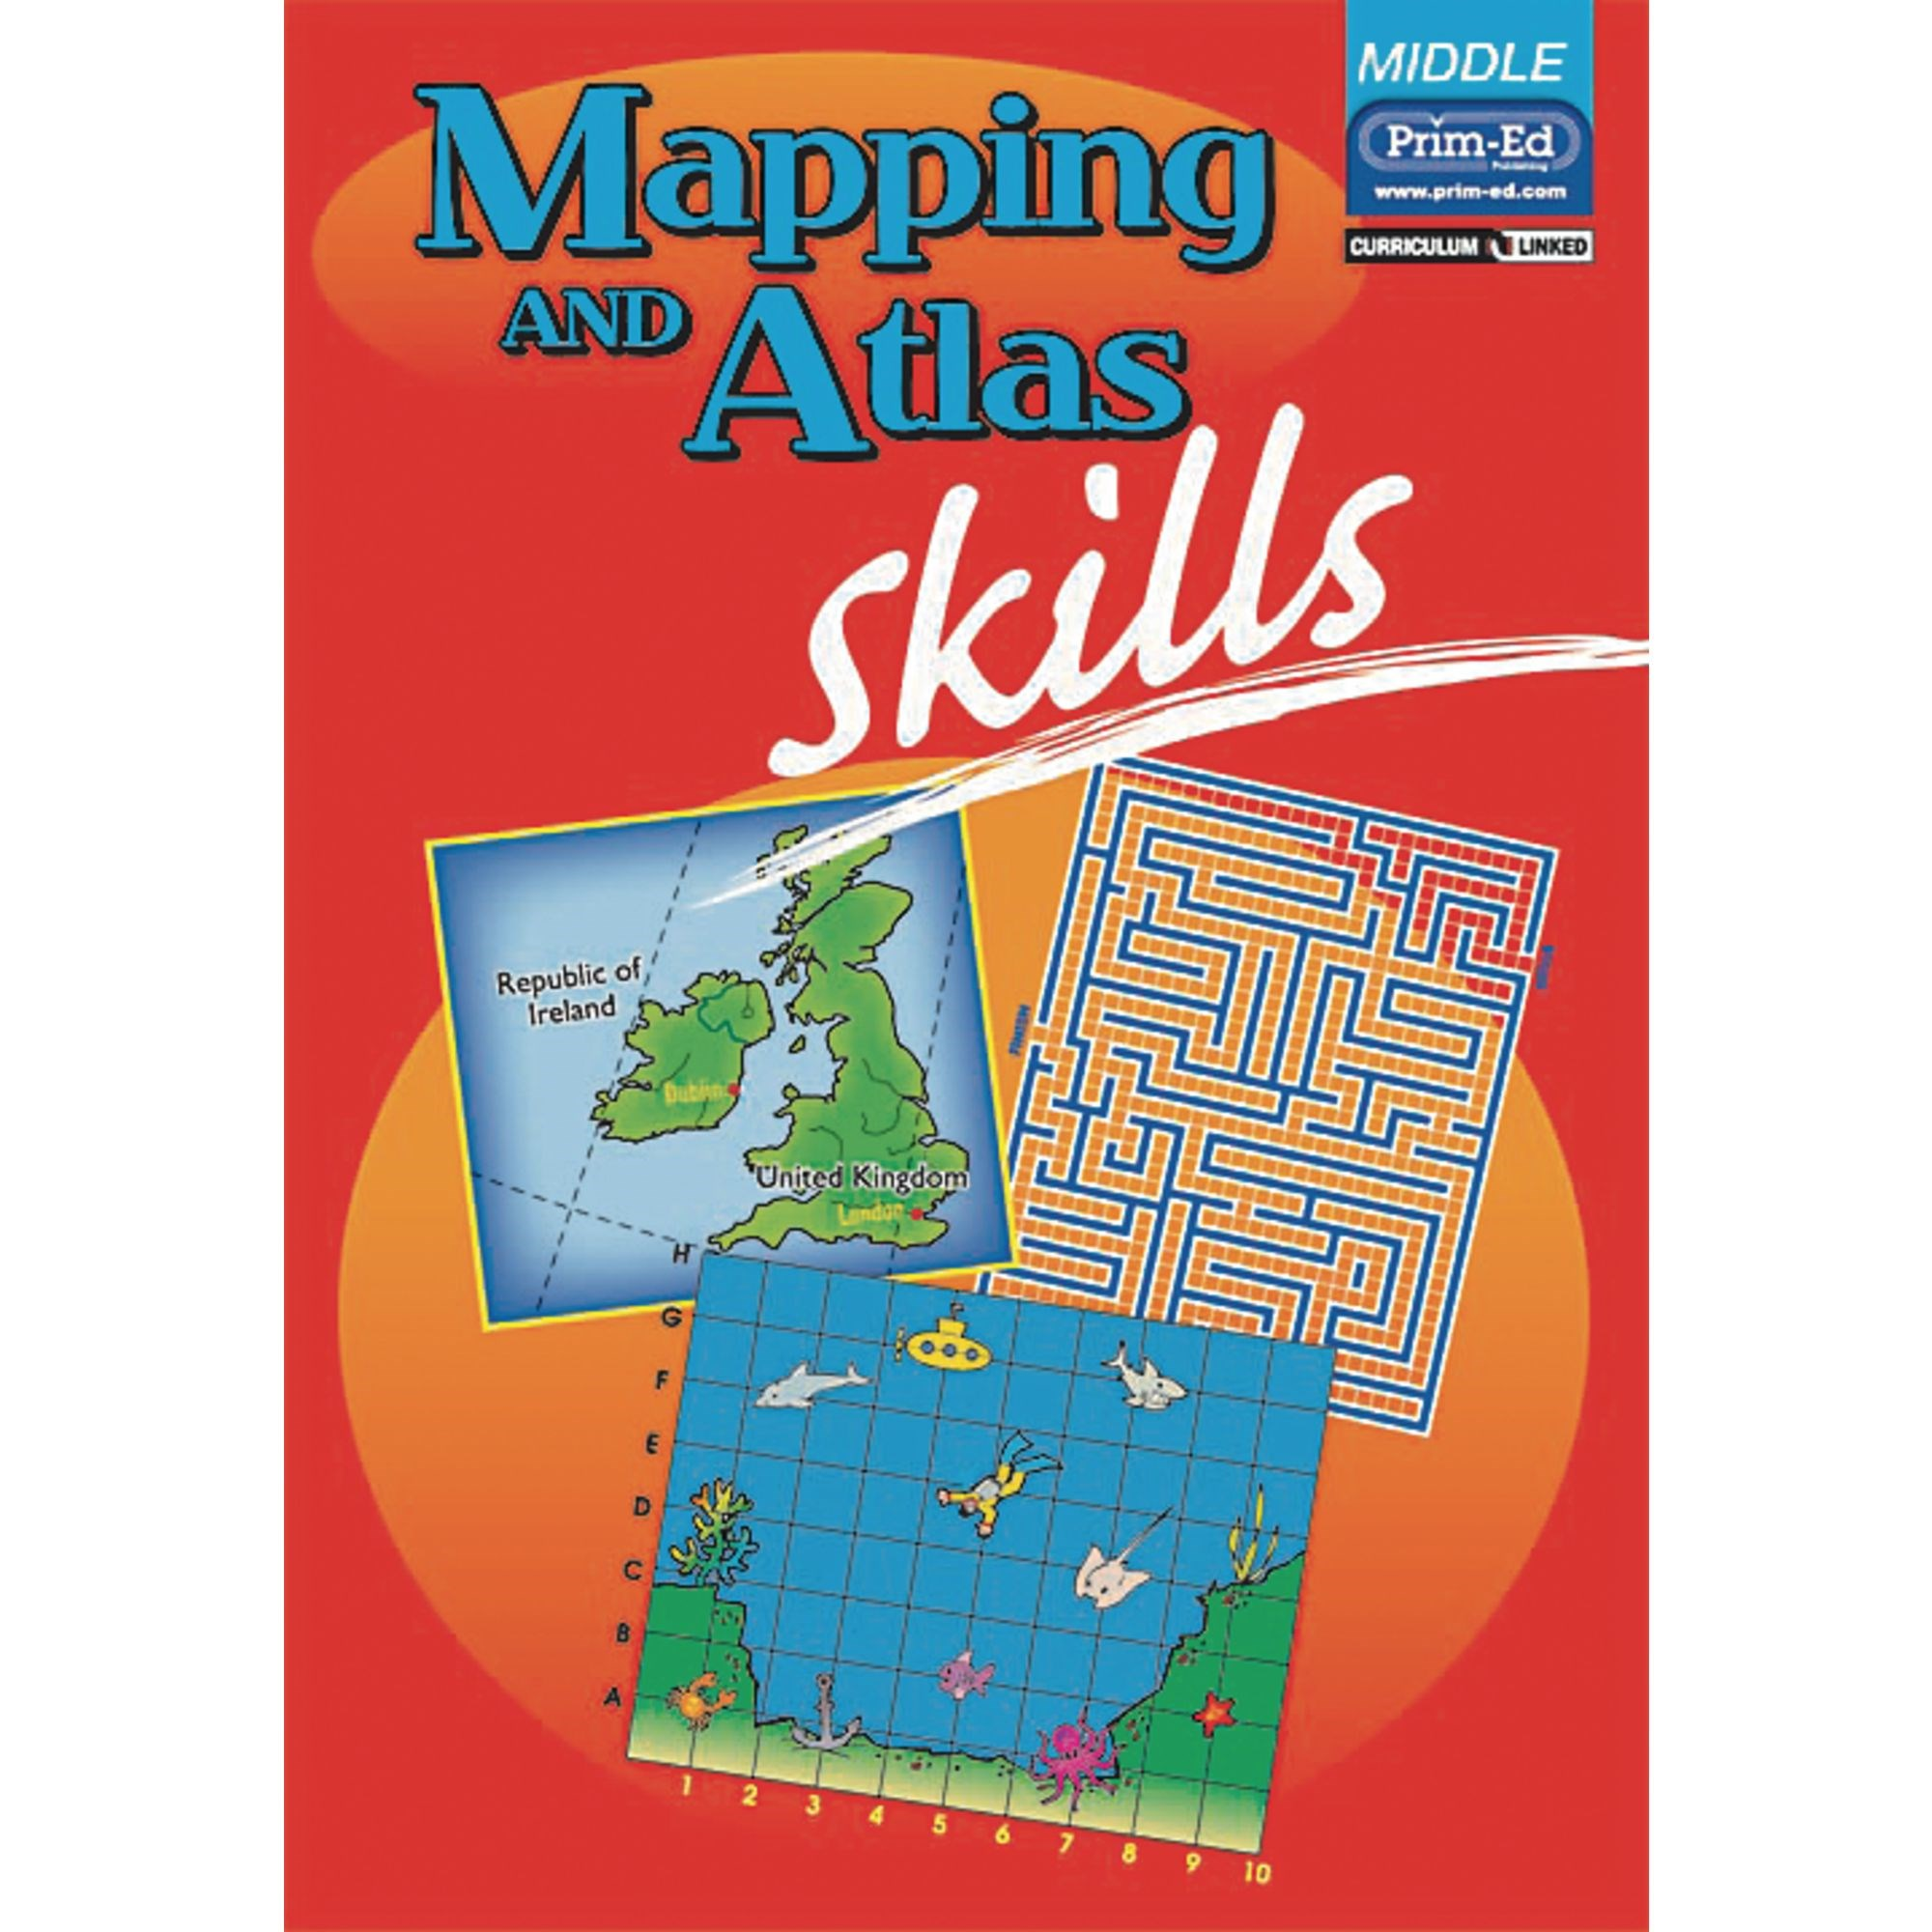 Mapping And Atlas Skills - Middle